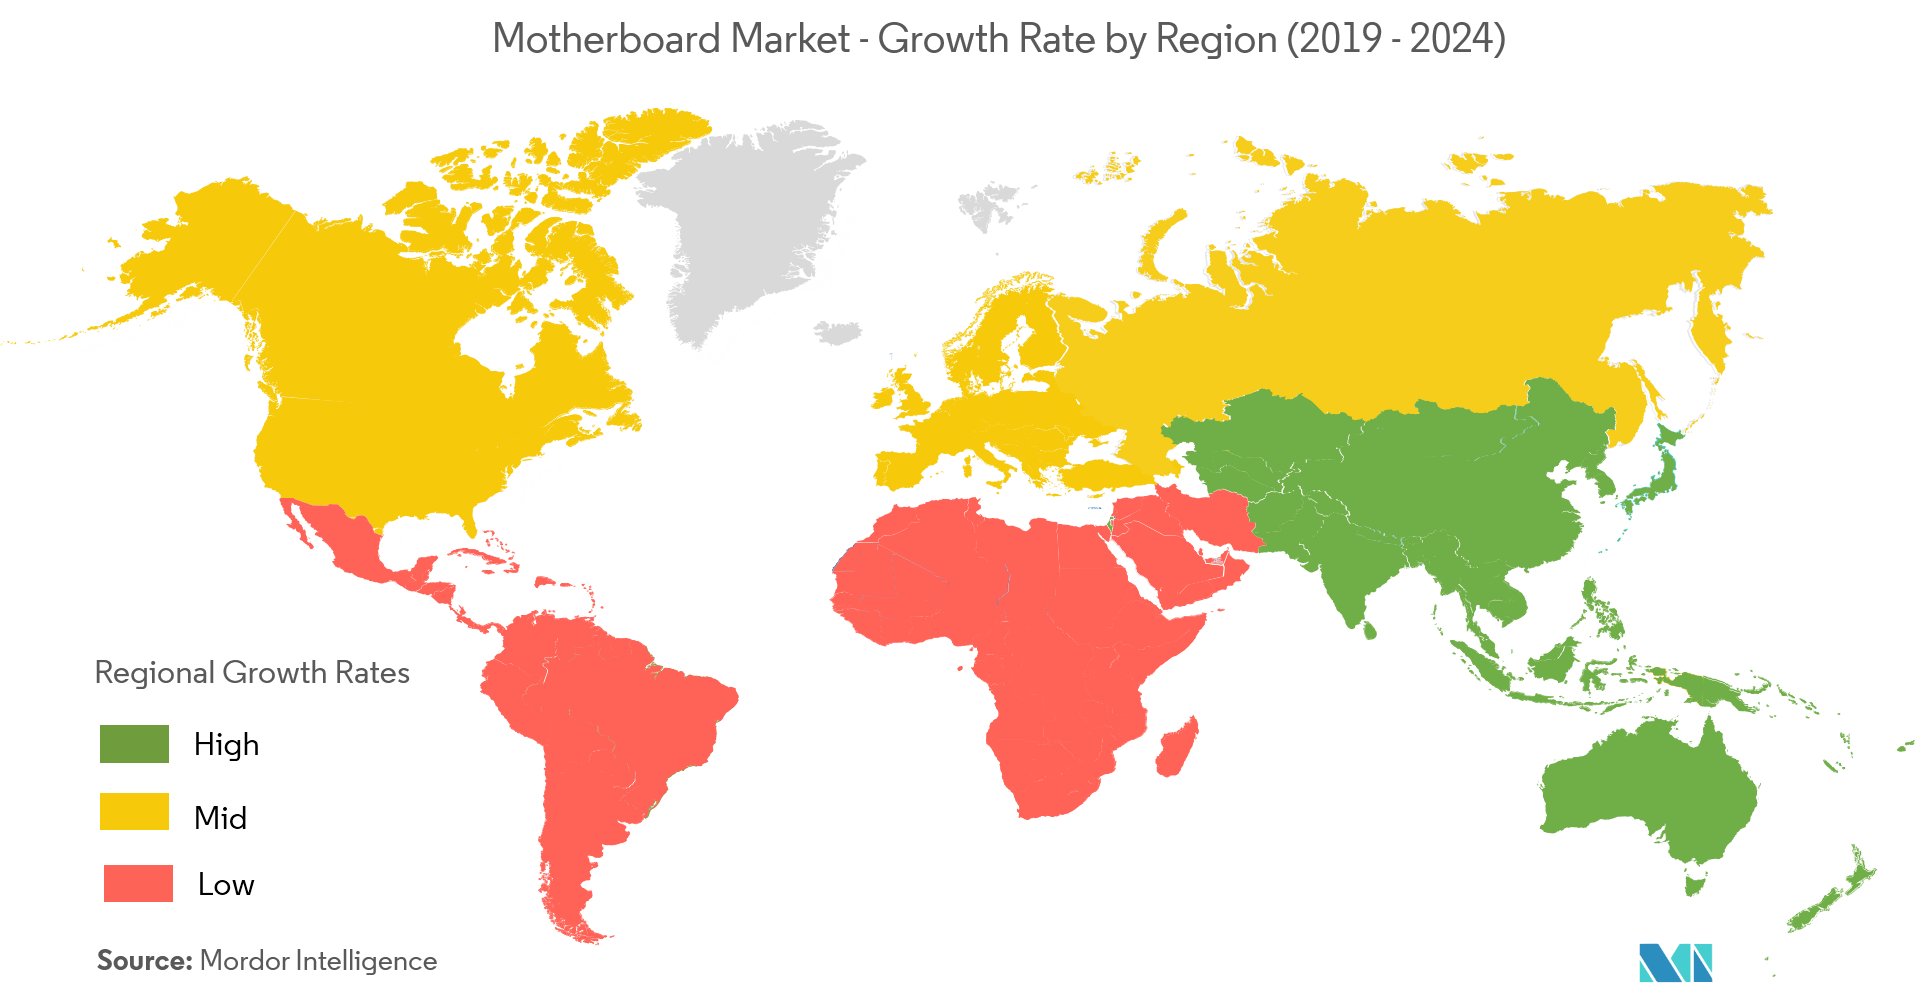 Motherboard Market Growth Rate By Region